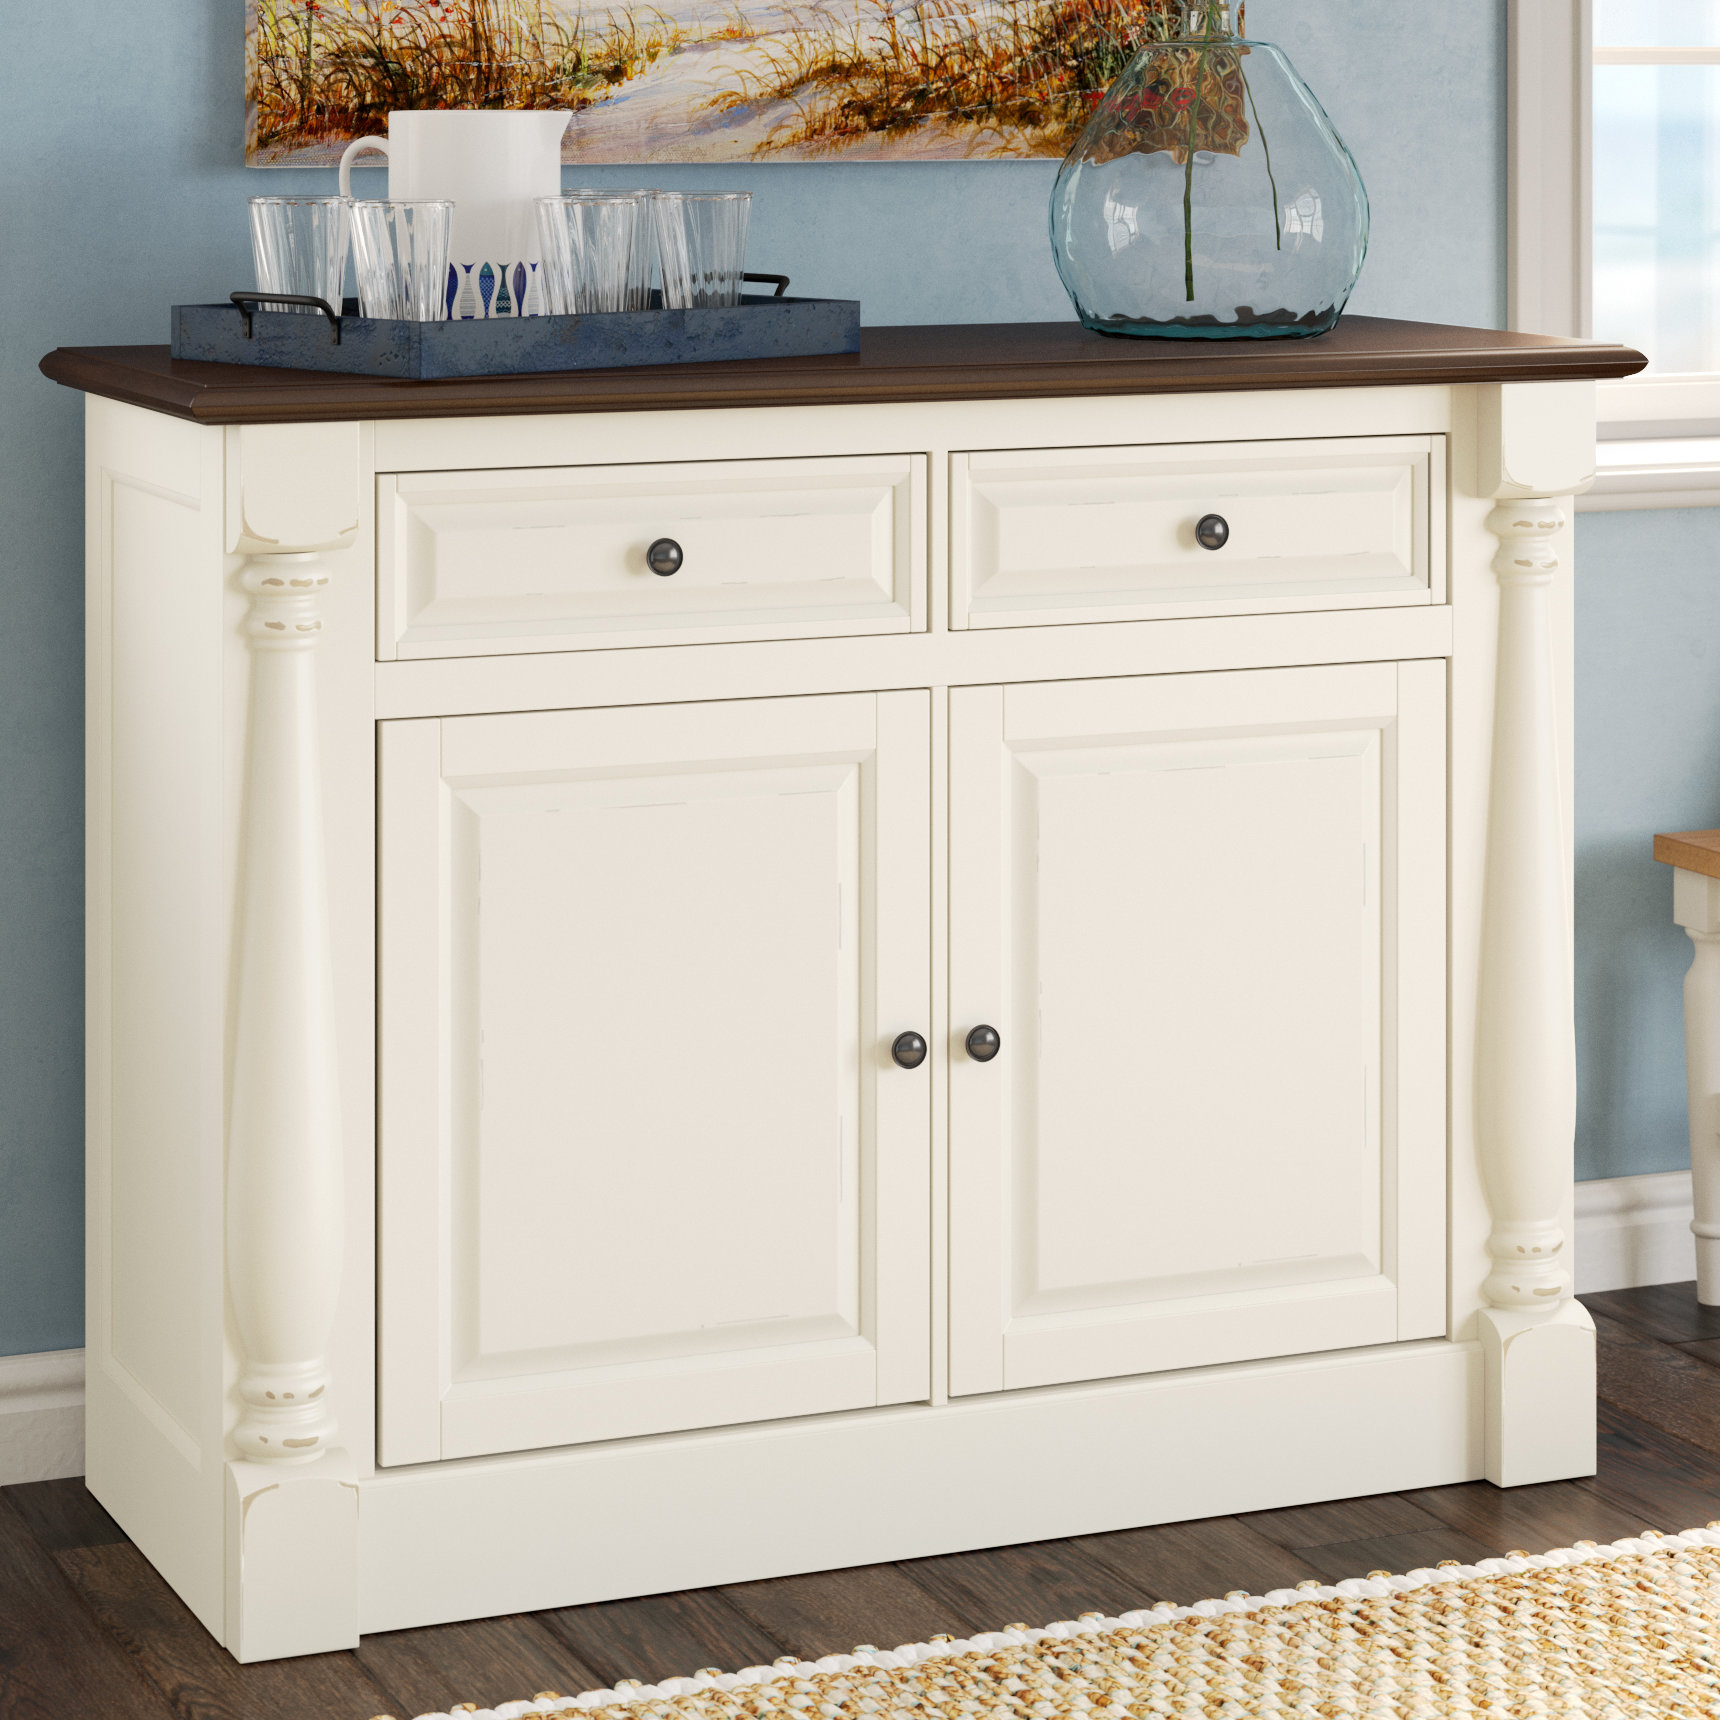 Wayfair With Regard To Cazenovia Charnley Sideboards (Gallery 16 of 20)